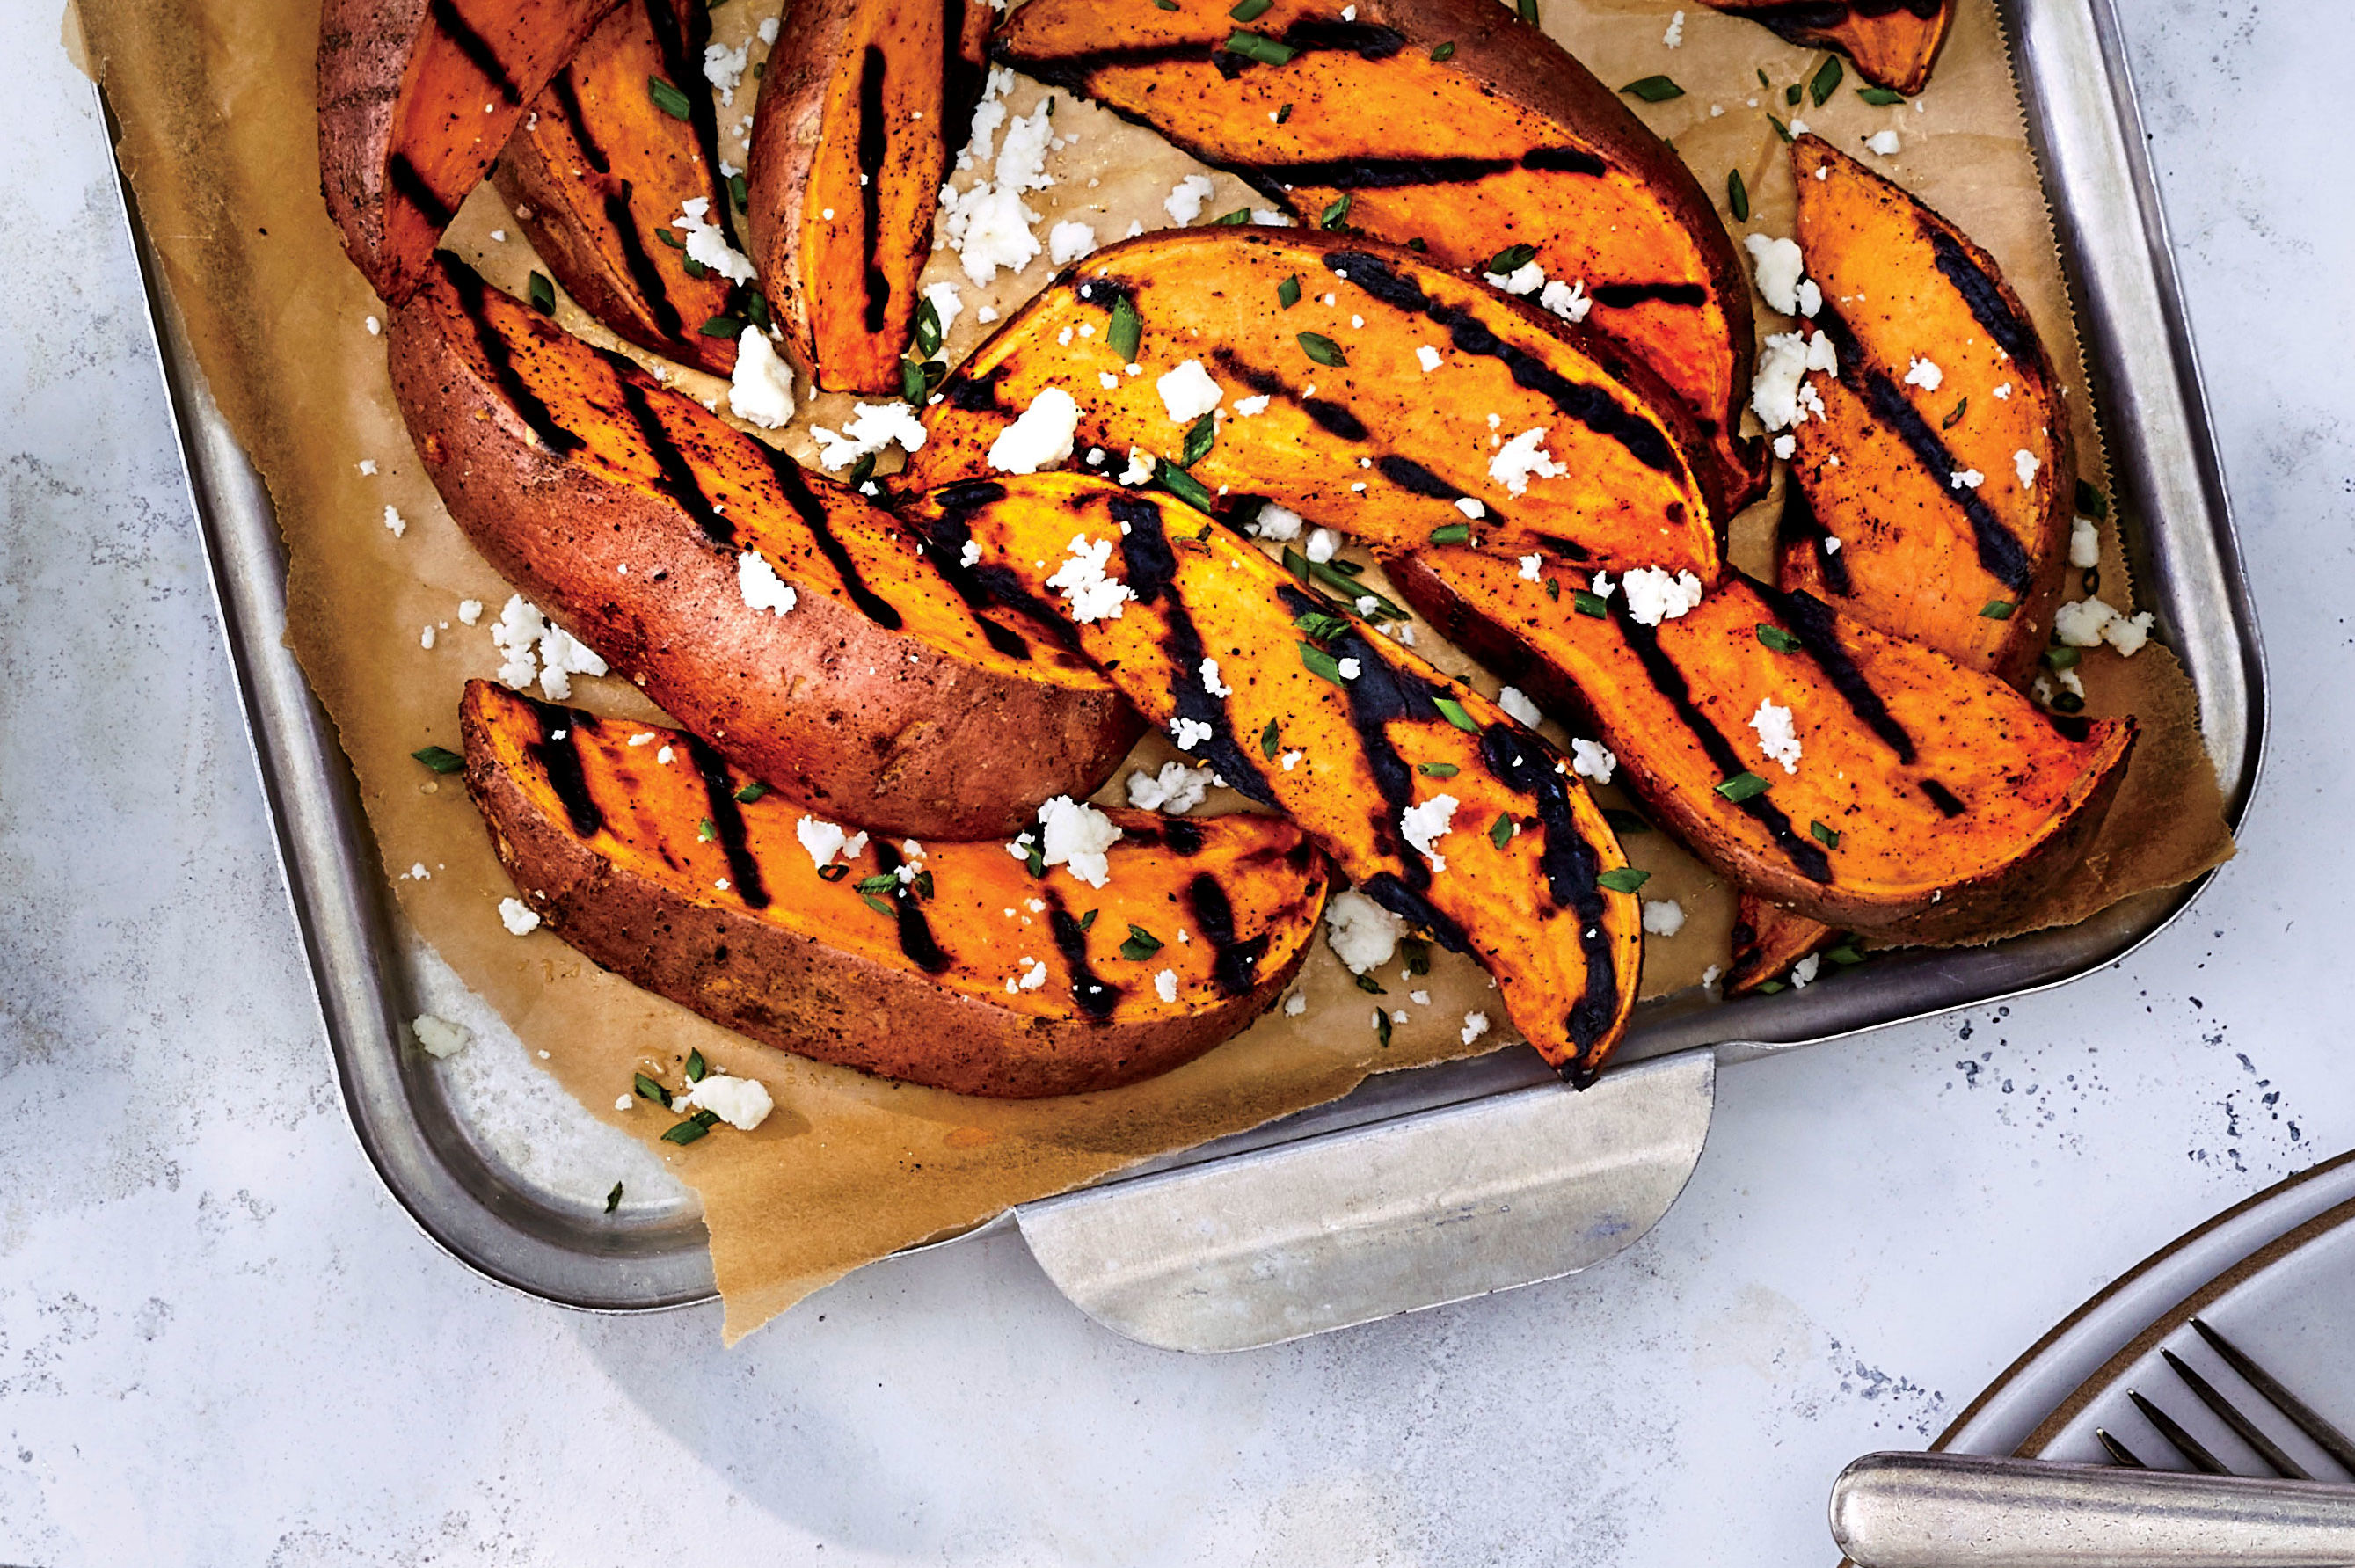 Grilled Sweet Potato Fries Recipe